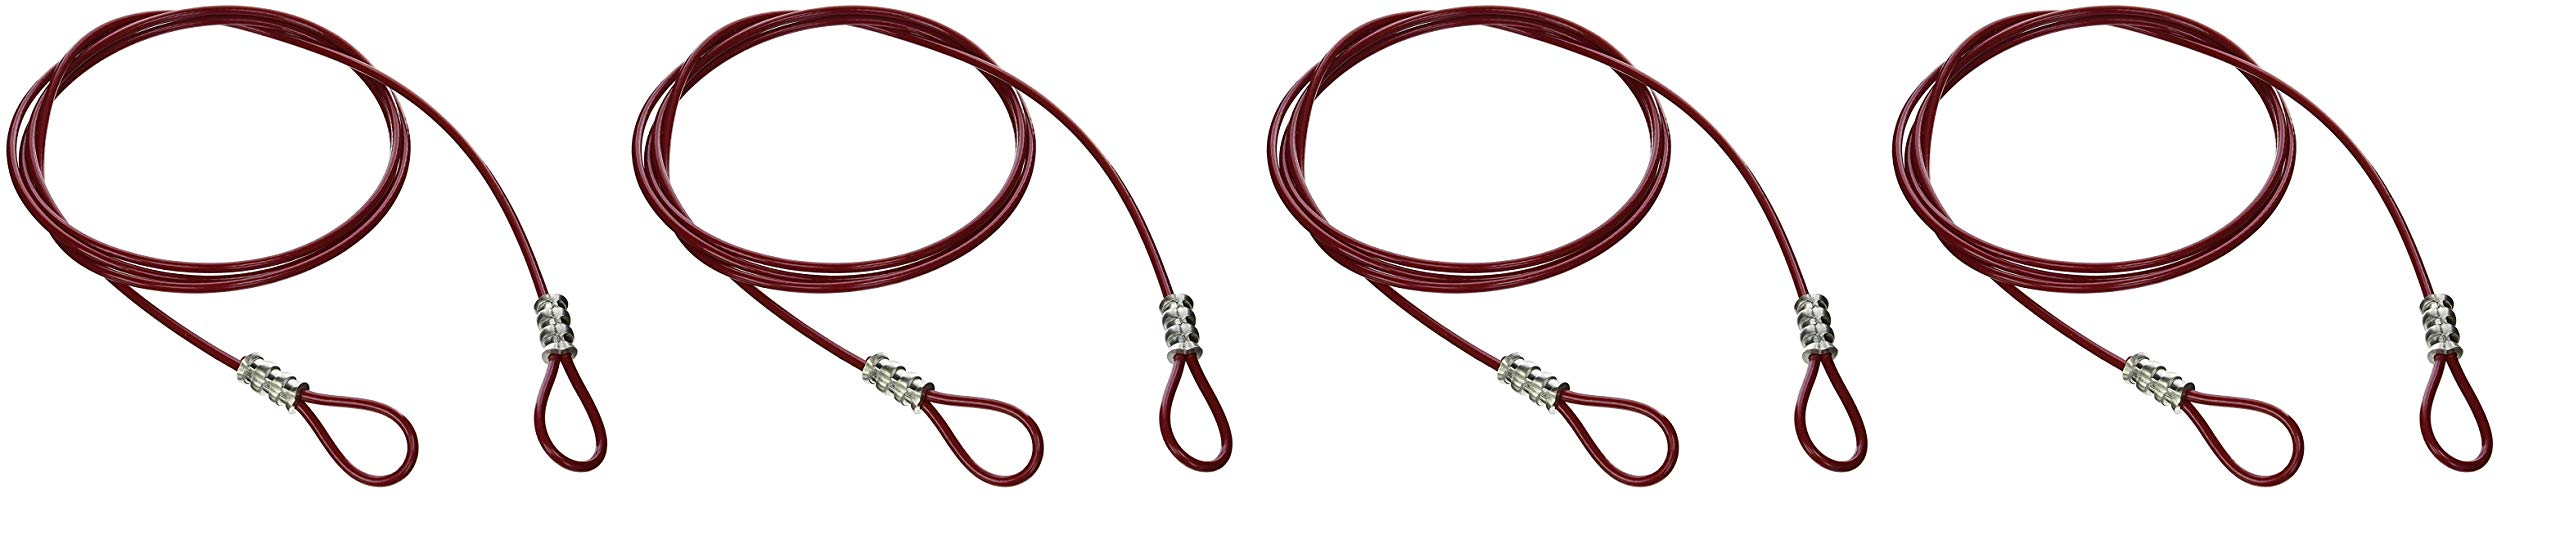 Brady 131066 Double Looped Lockout Cable, Plastic Coated Steel, 8' Cable, Red (Fоur Paсk)